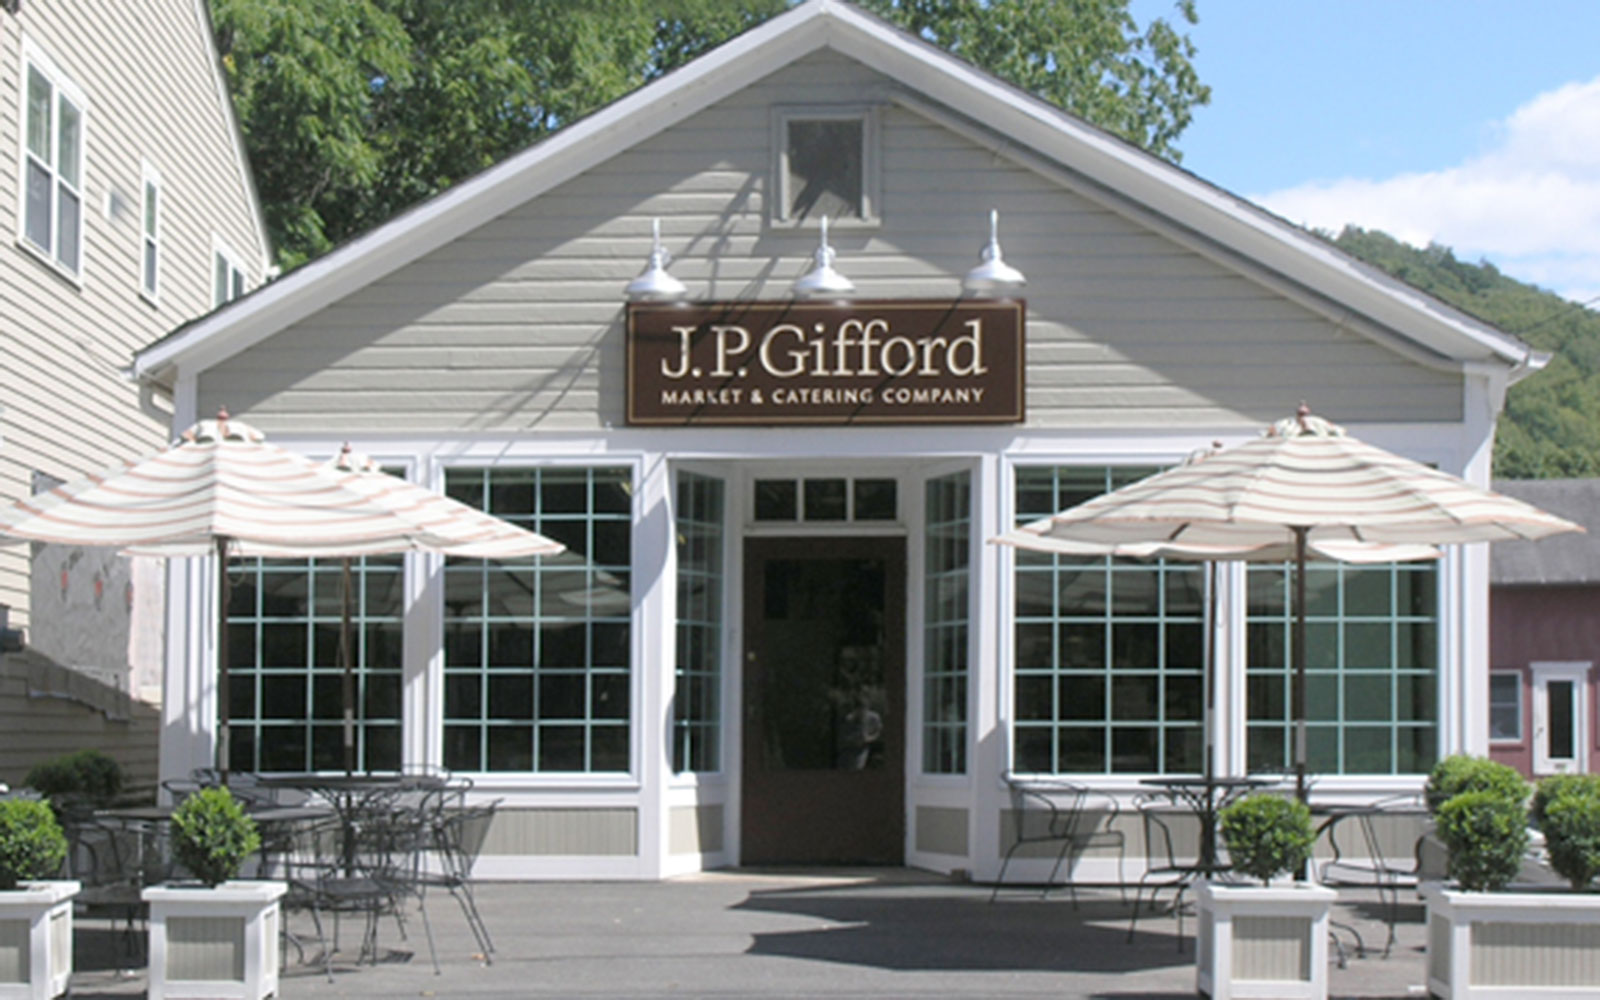 The 15 Best Small-Town Bakeries: J.P. Gifford Market & Catering Company in Kent, Connecticut